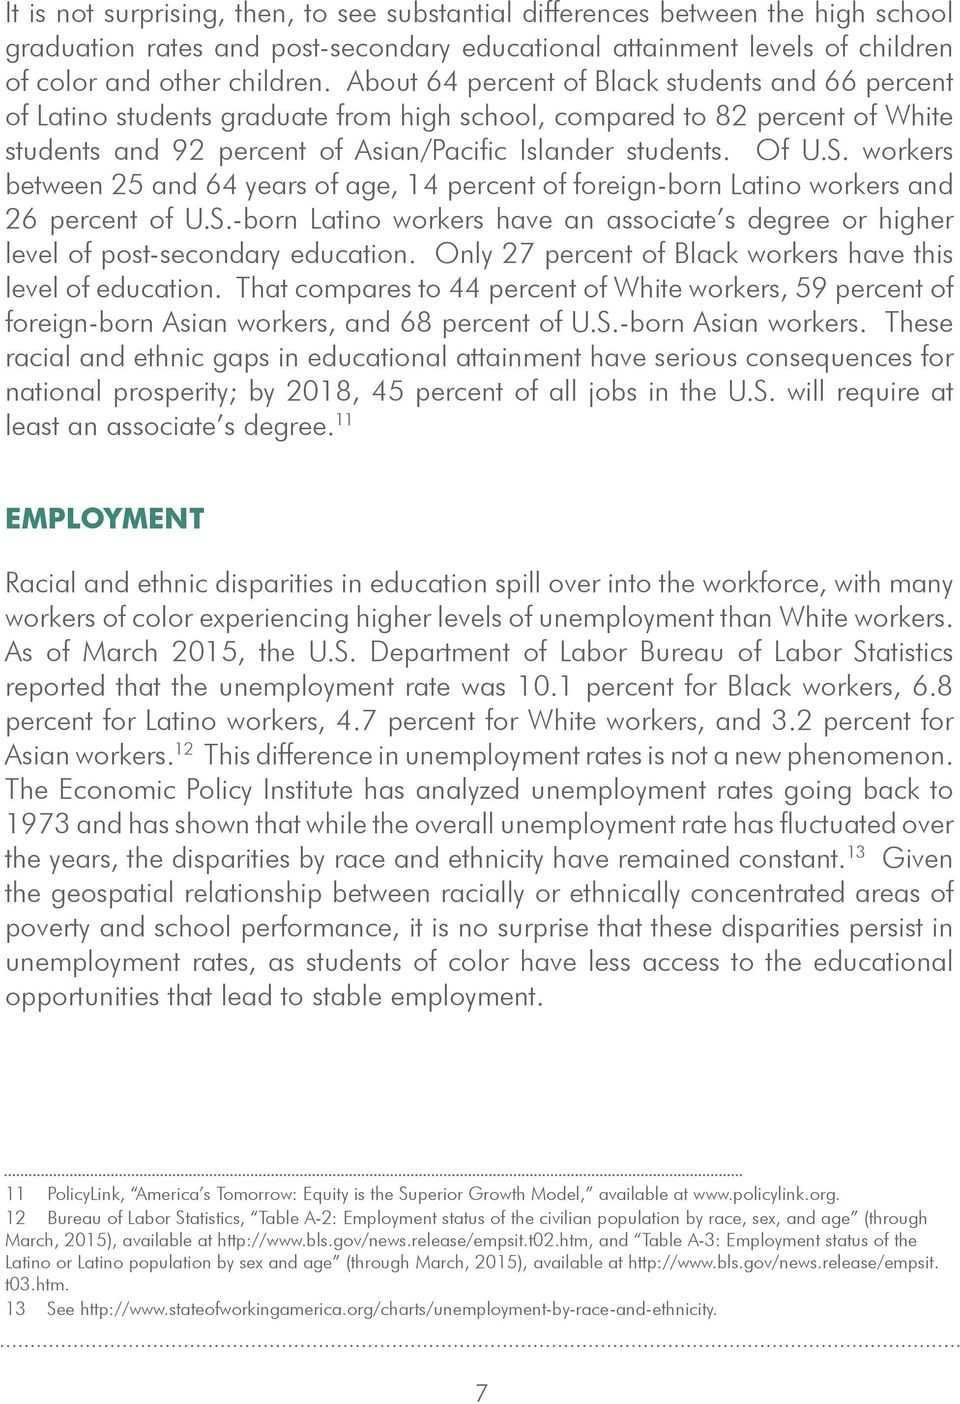 workers between 25 and 64 years of age, 14 percent of foreign-born Latino workers and 26 percent of U.S.-born Latino workers have an associate s degree or higher level of post-secondary education.